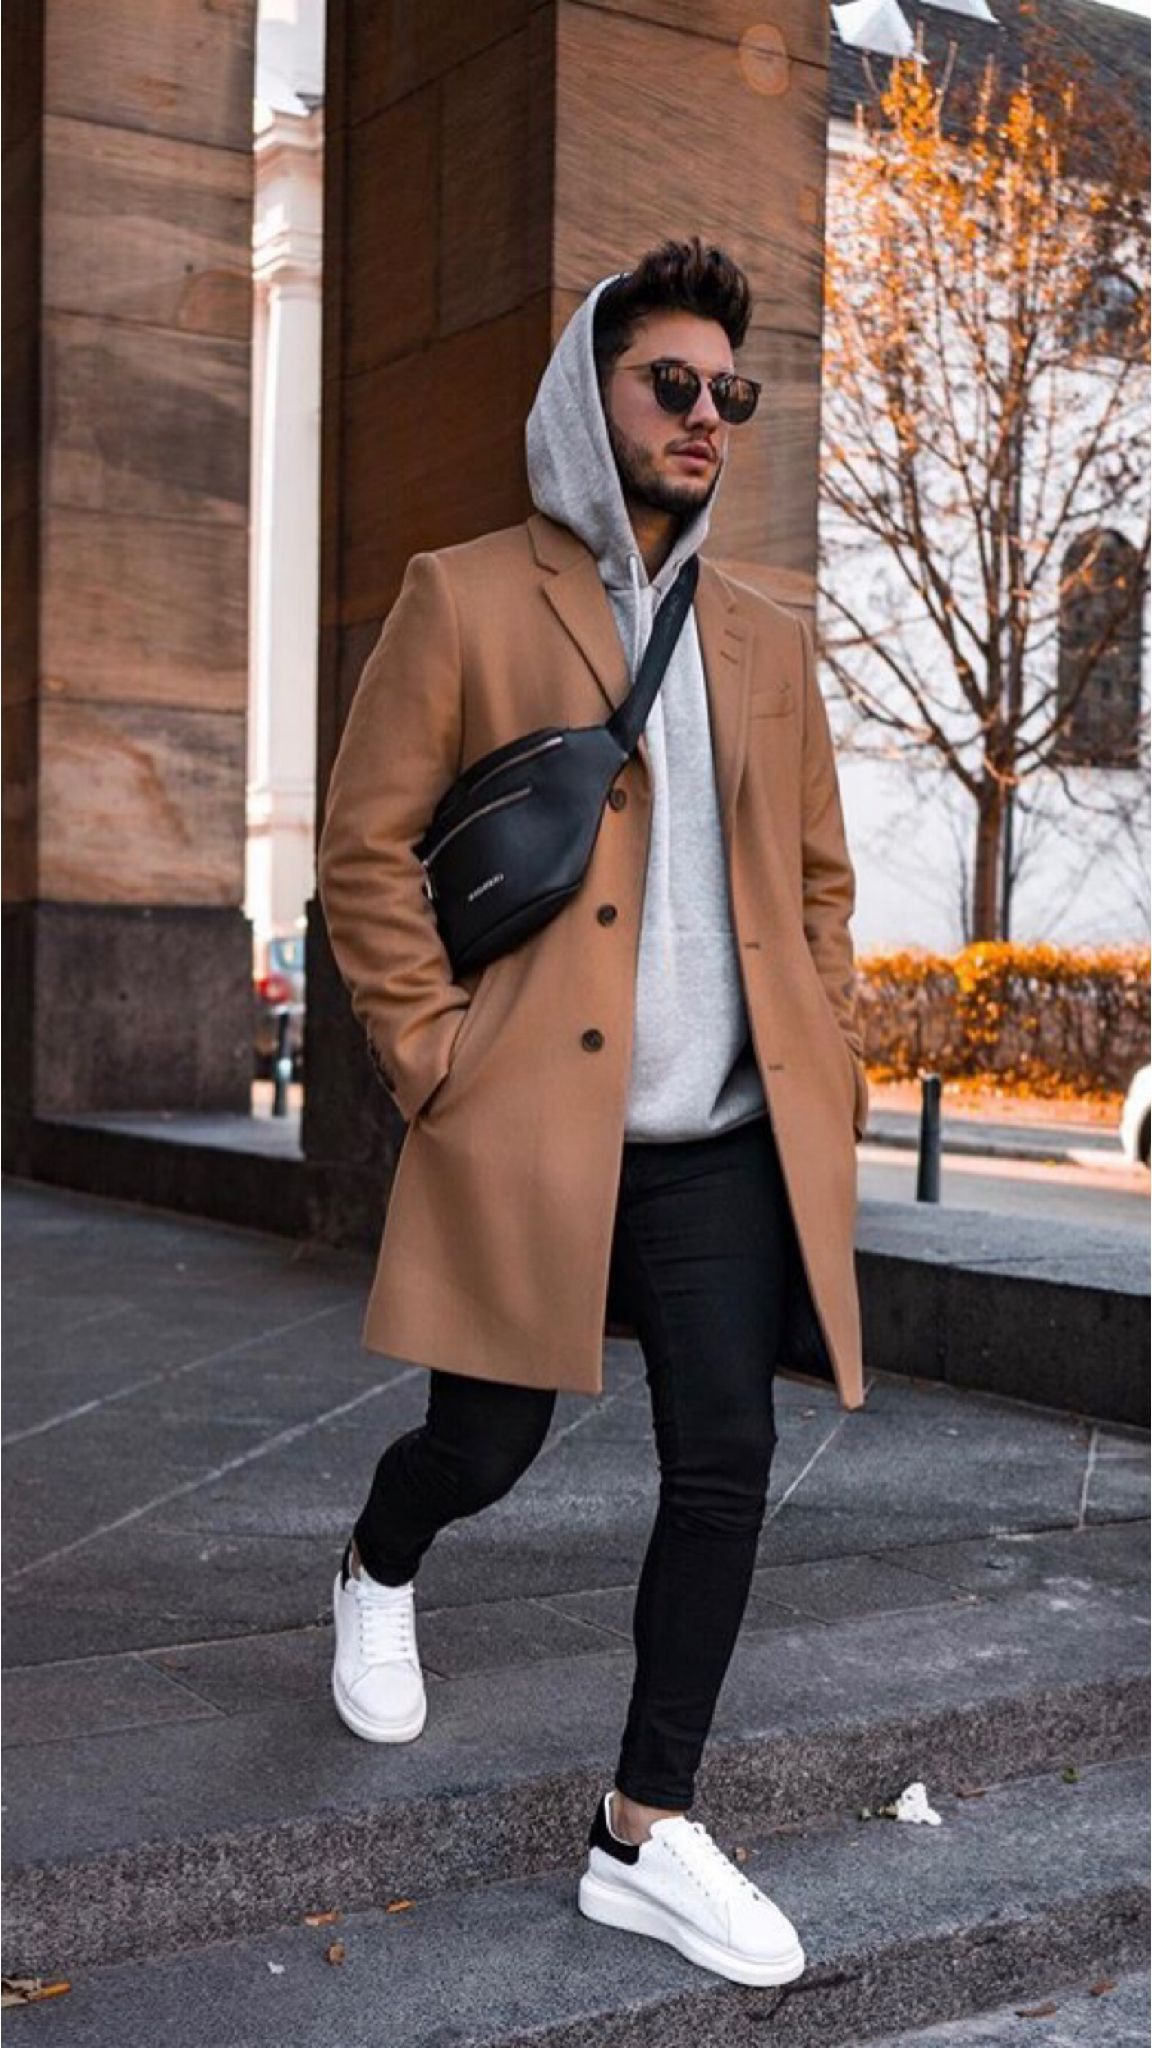 30 Dope street style outfits! #menstreetstyles